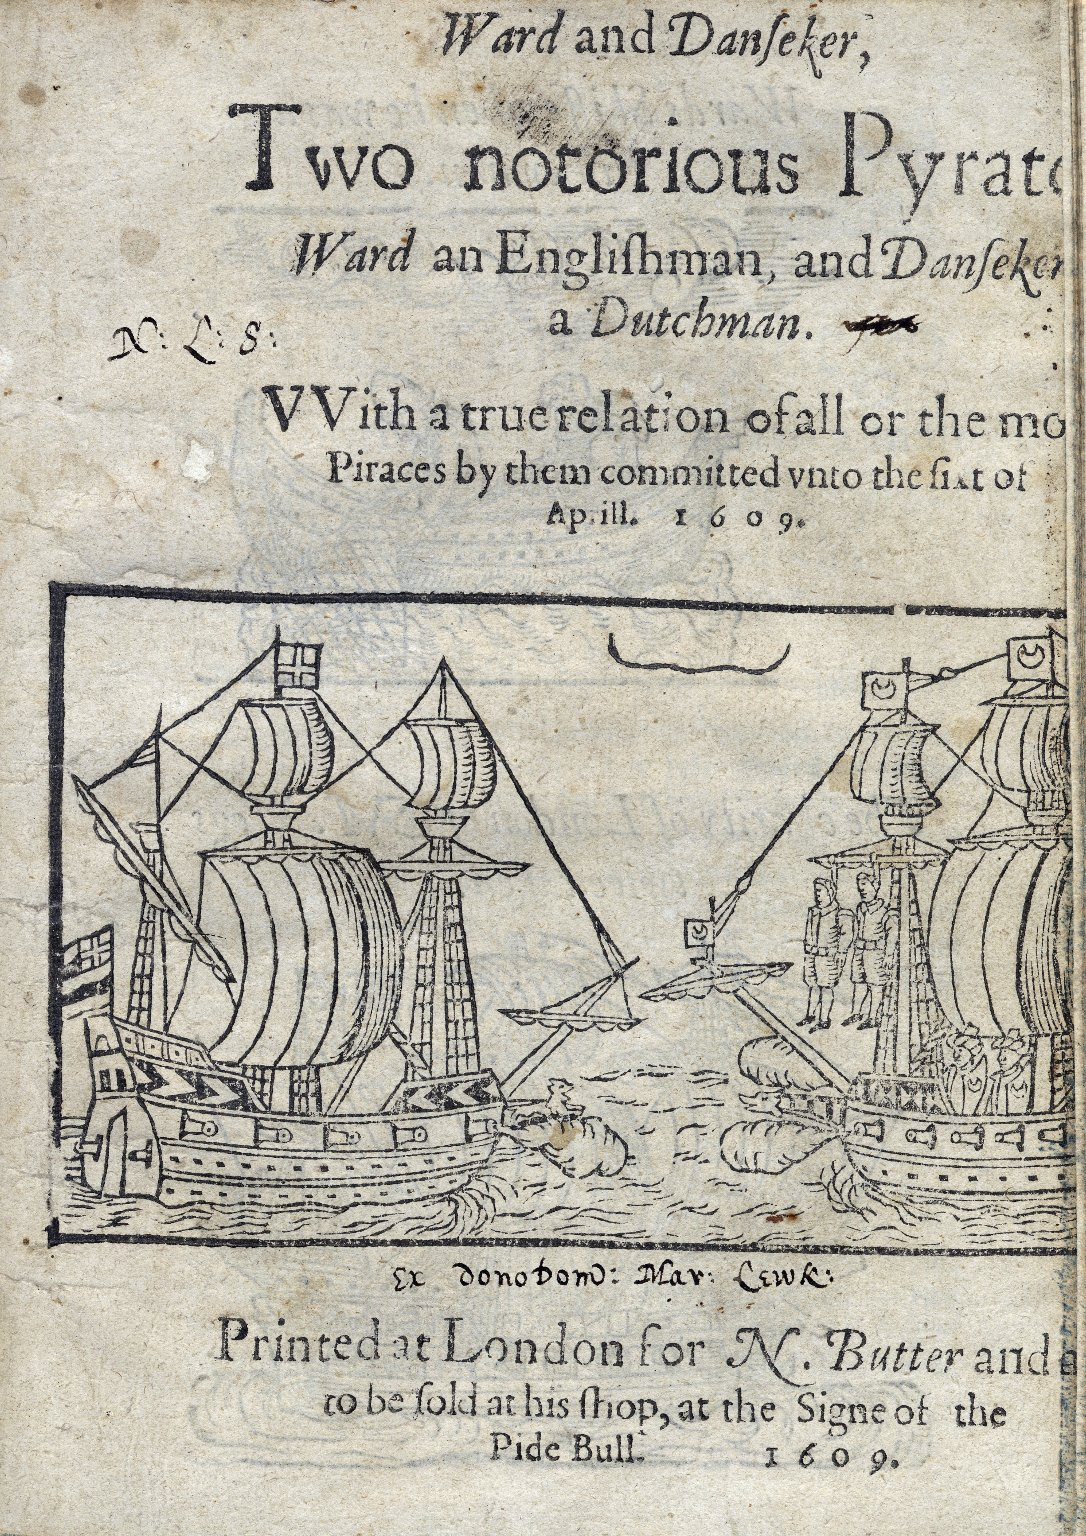 [Newes from sea, of two notorious pyrats Ward the Englishman, and Danseker the Dutchman.] Ward and Danseker, tvvo notorious pyrate[s,] ...